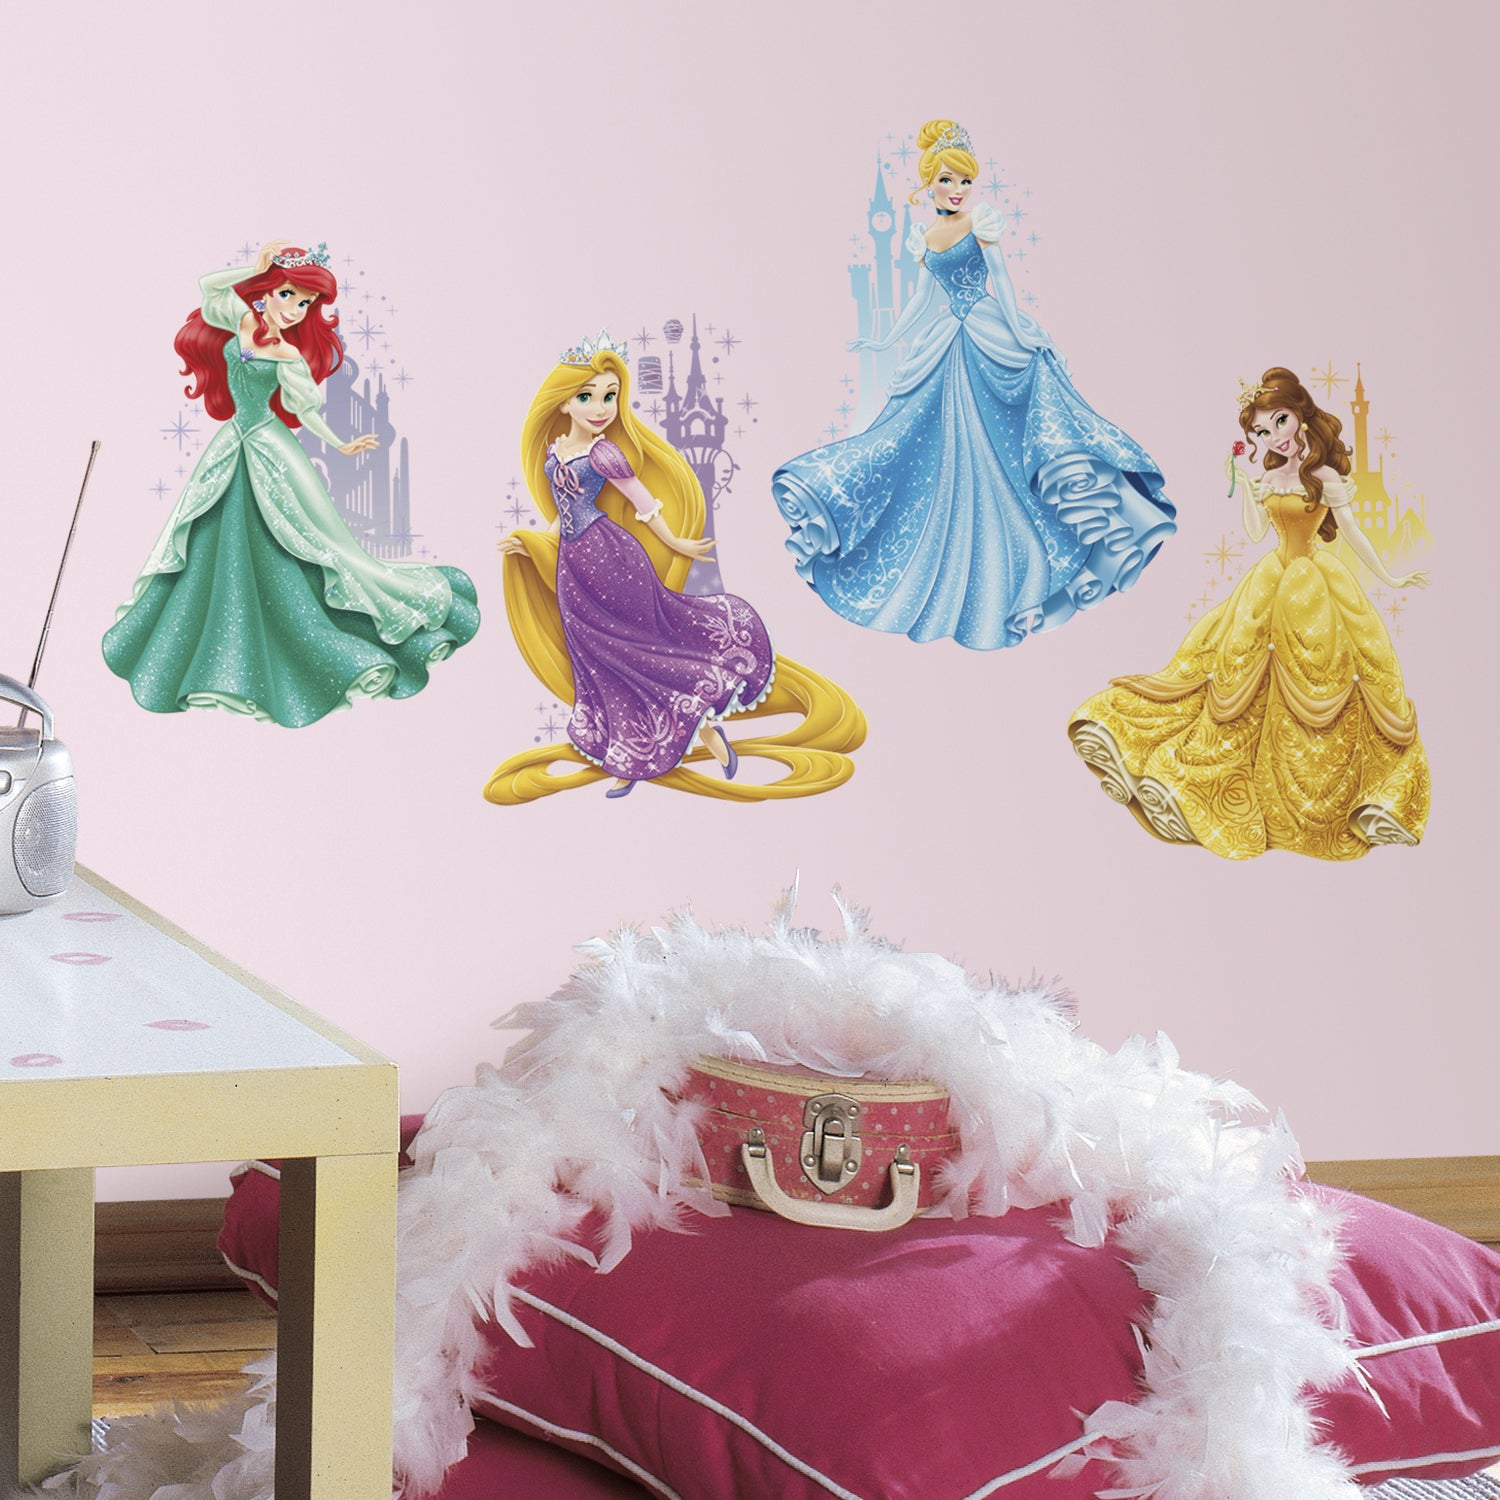 RoomMates Disney Princess Castles Peel and Stick Giant Wa...